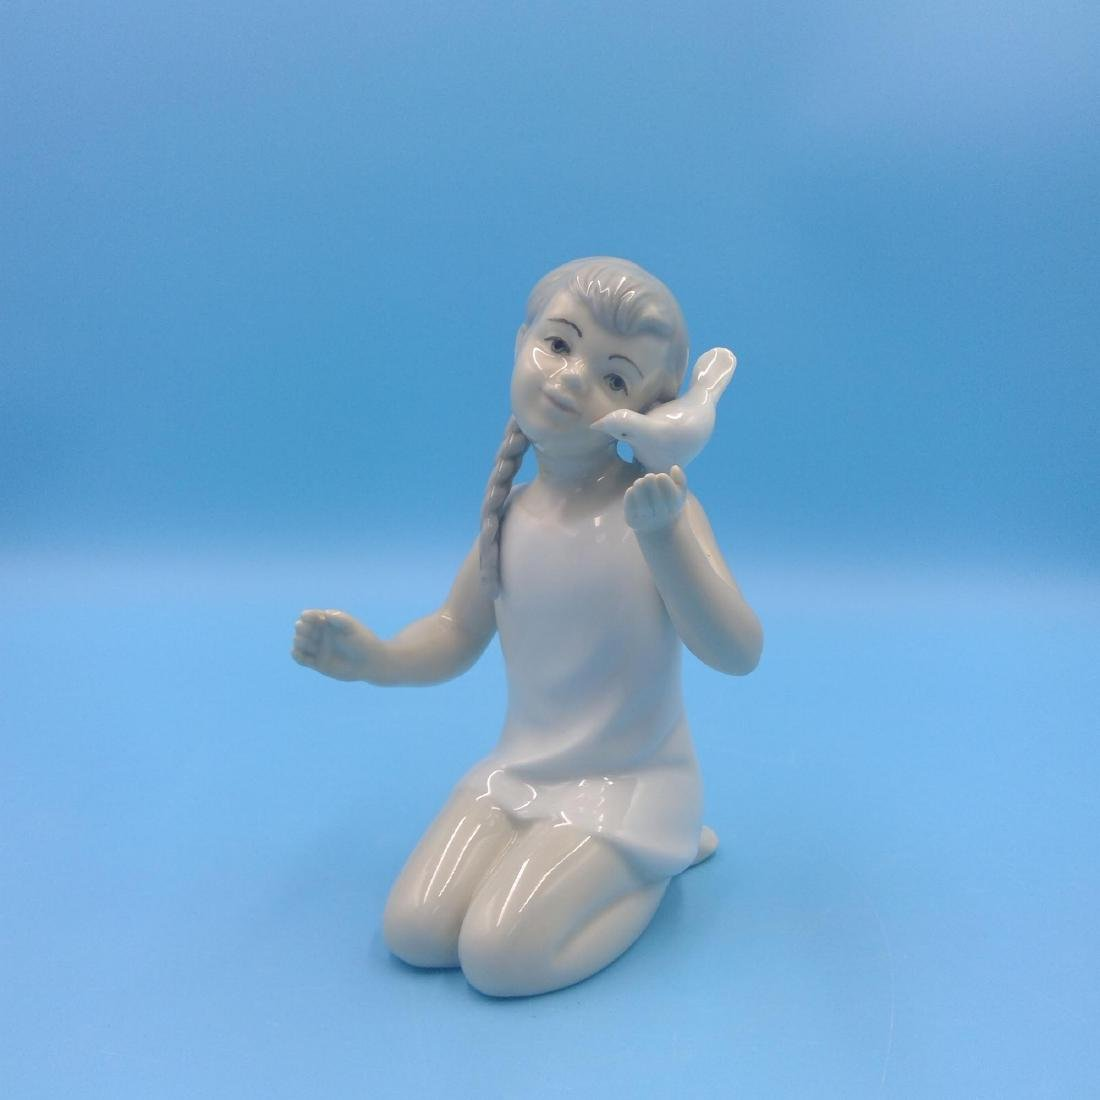 GROUP OF 3 SPANISH PORCELAIN FIGURINES - 9